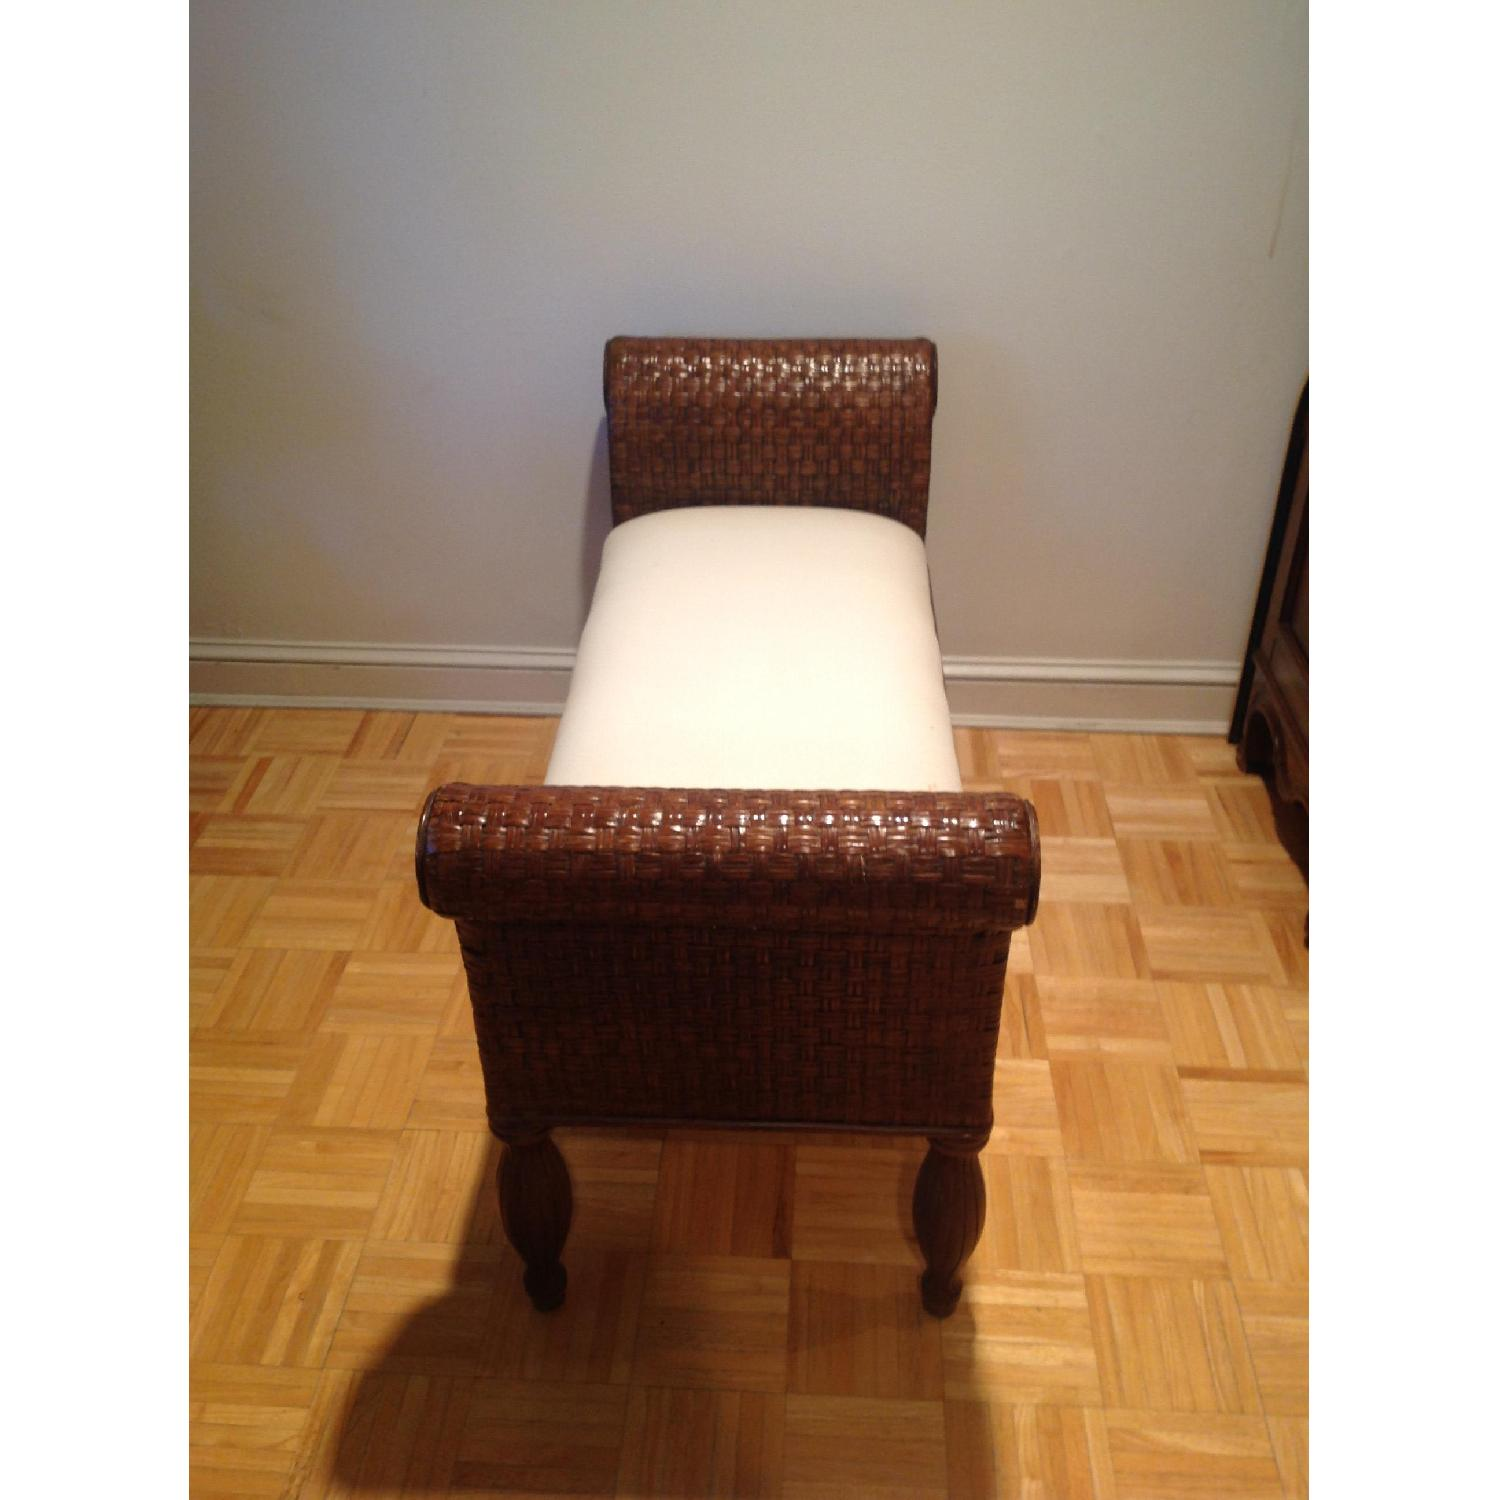 Ethan Allen Wicker Bench - image-4